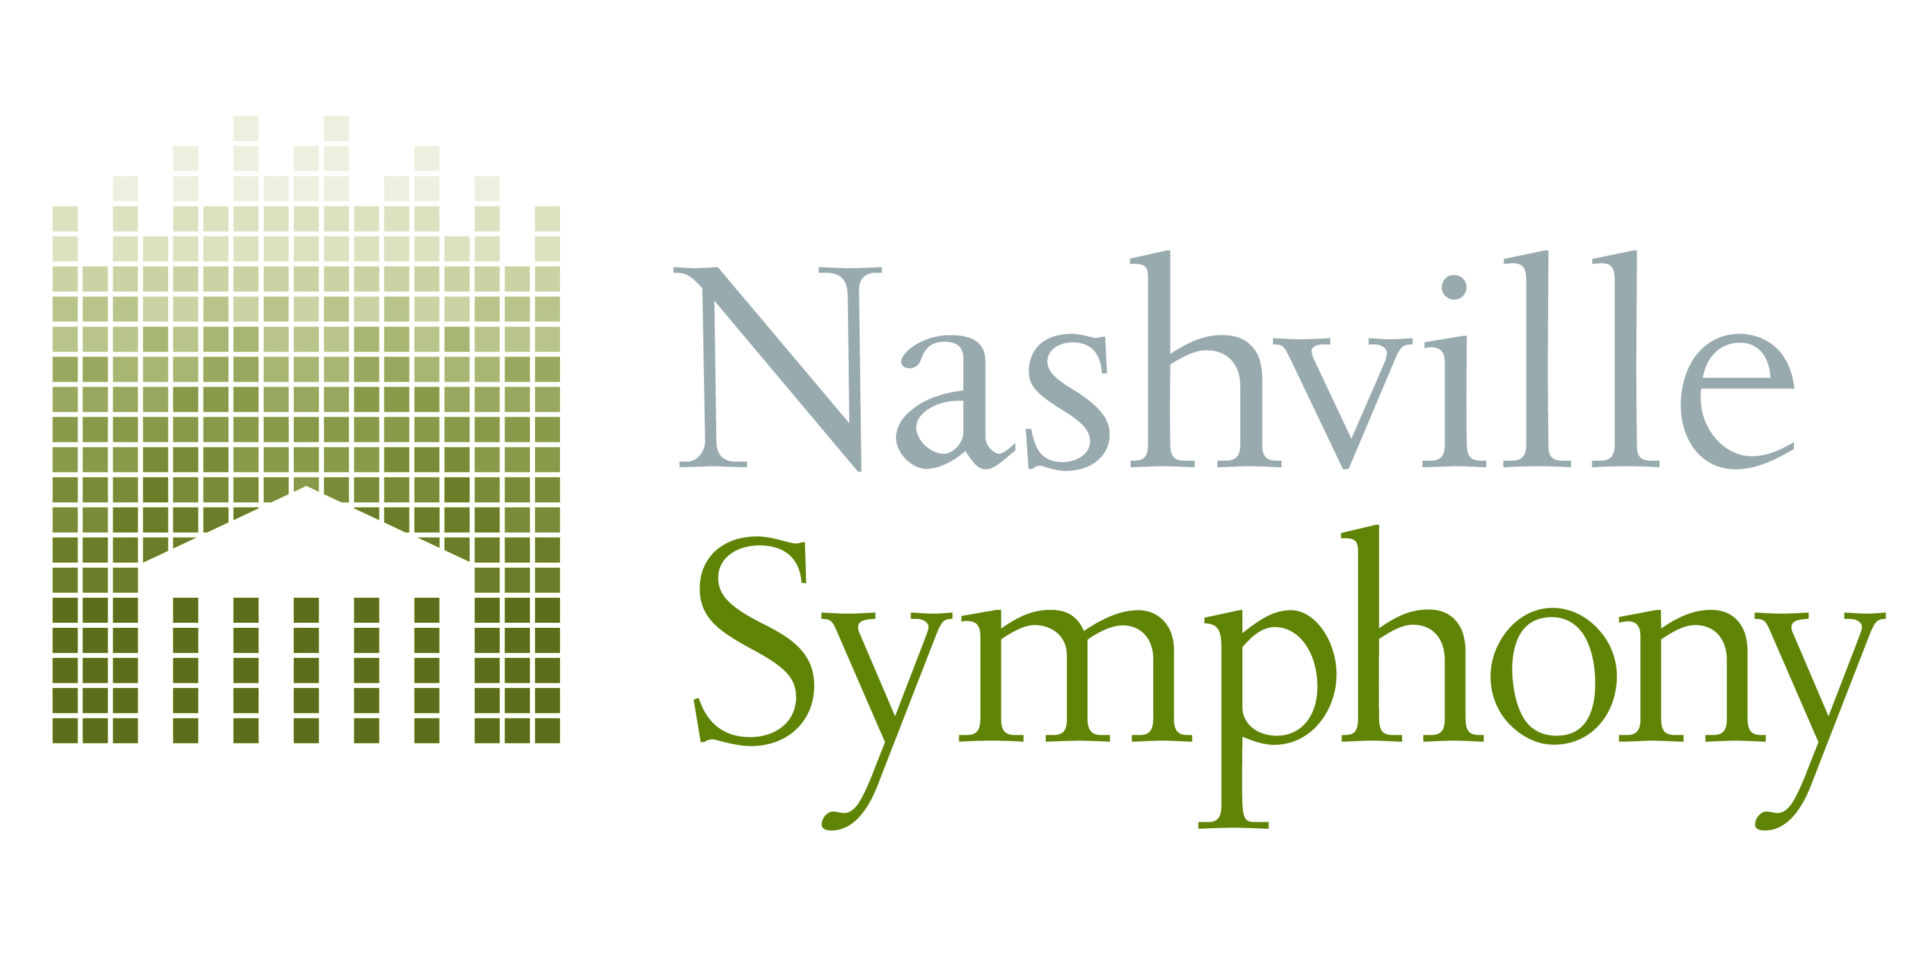 Nashville Symphony offers Concerts, Music, Events, C